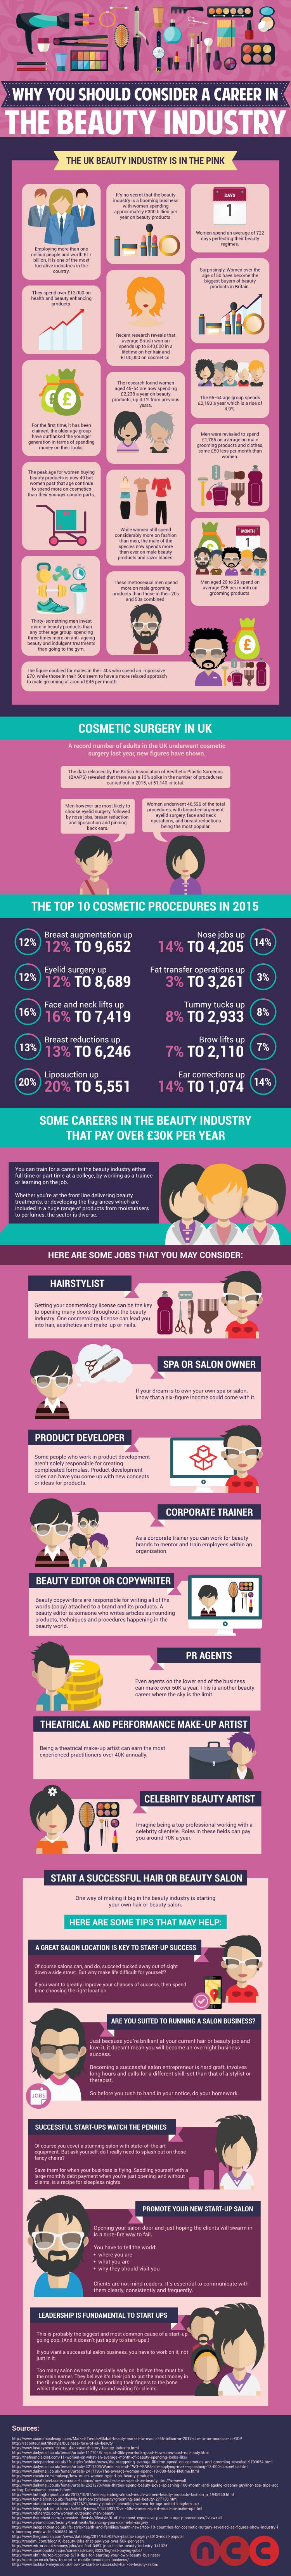 Why-You-Should-Consider-A-Career-In-The-Beauty-Industry---V1